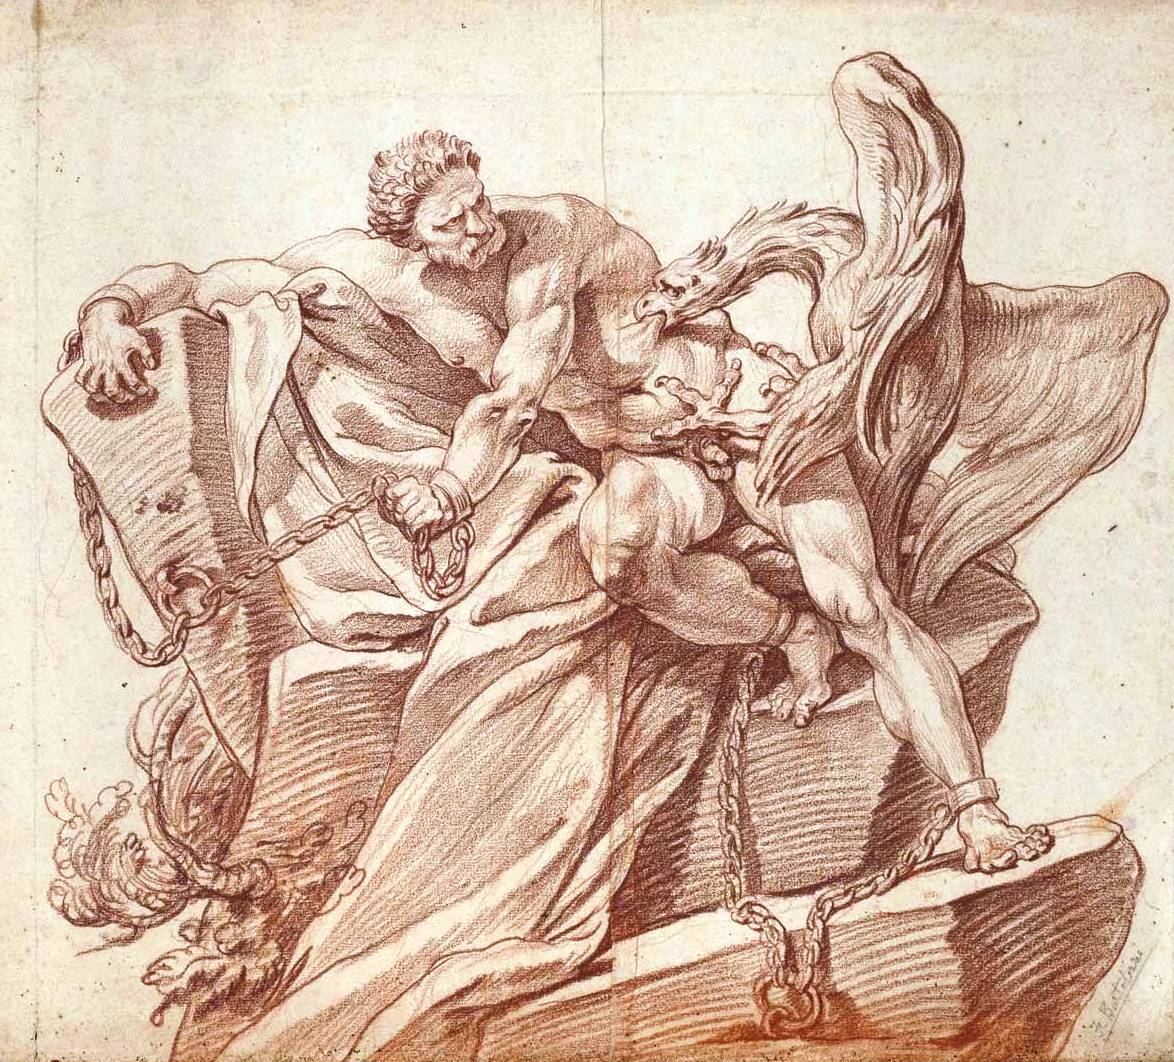 prometheus bound thesis Let us separate or edit the essay on your thesis prompt prometheus bound none art bound essay topics described and study for aeschyluss.